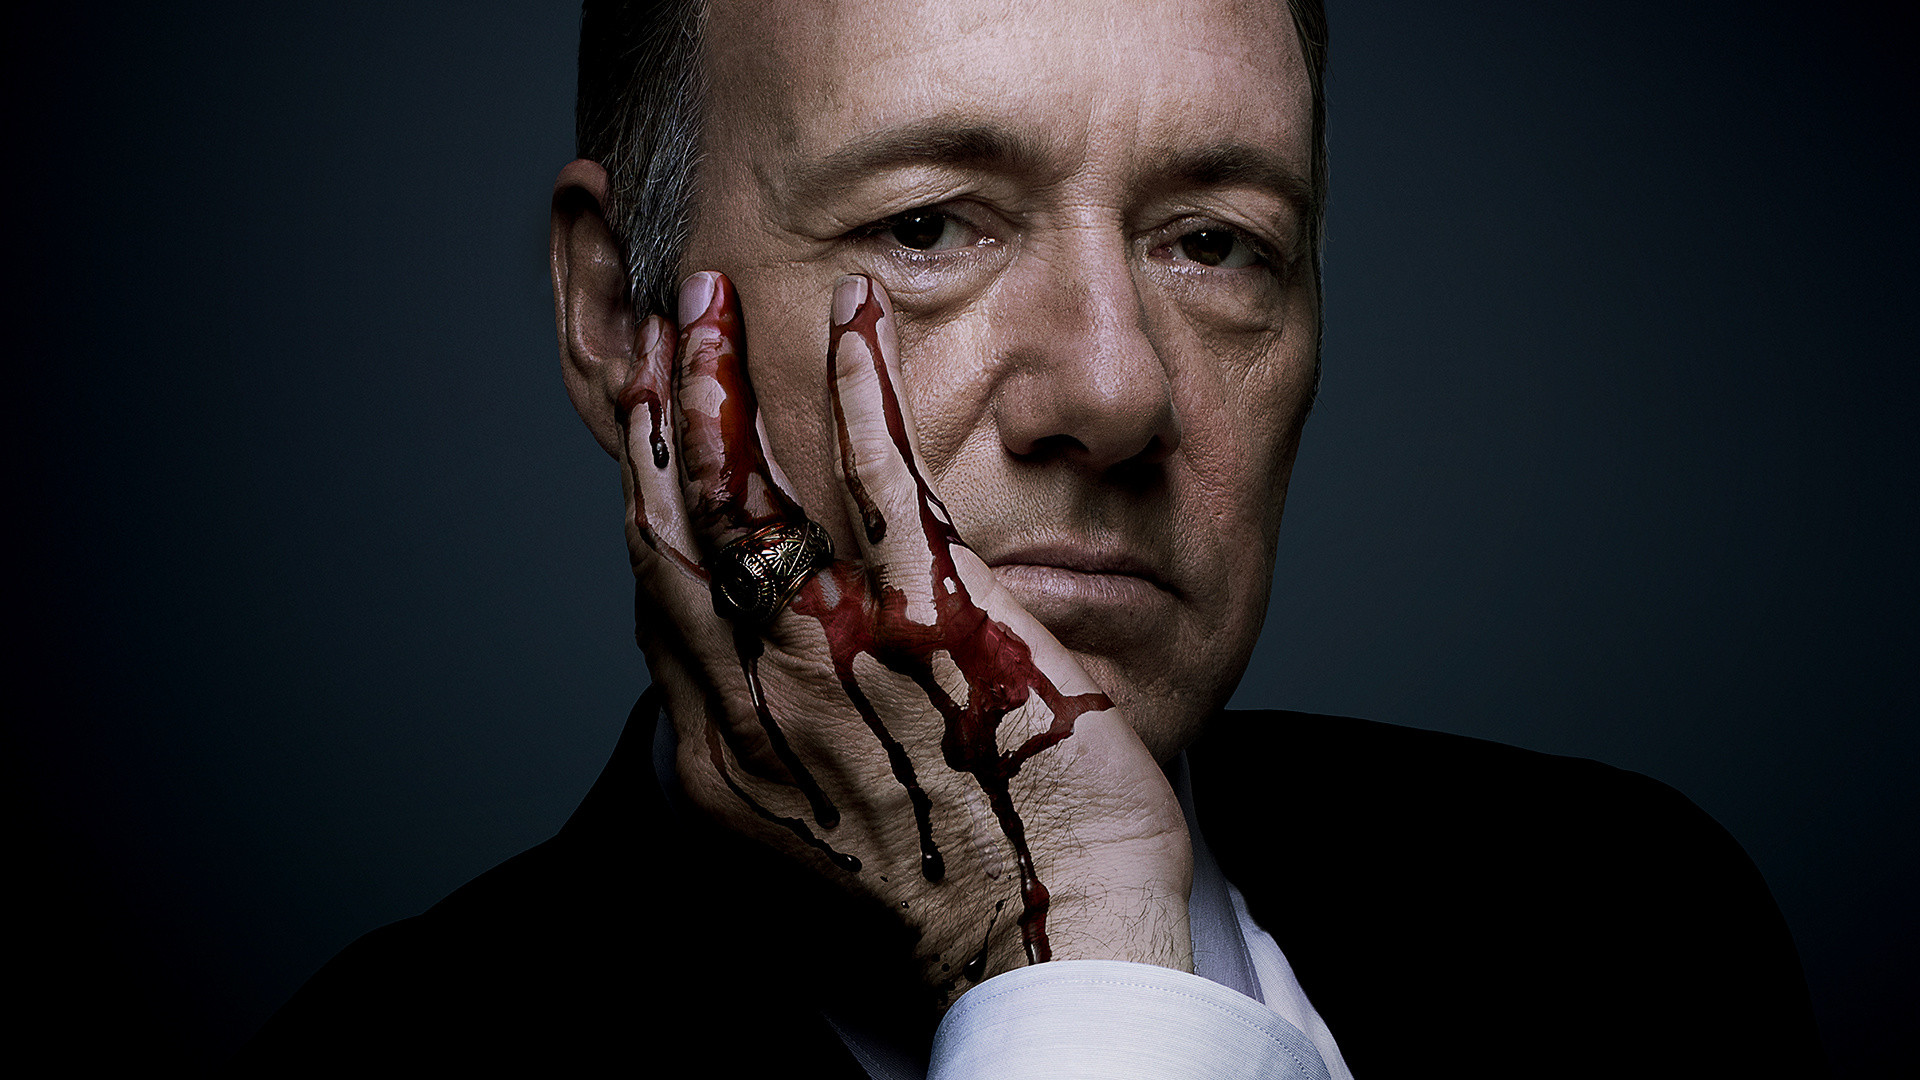 Frank Underwood for the President ....